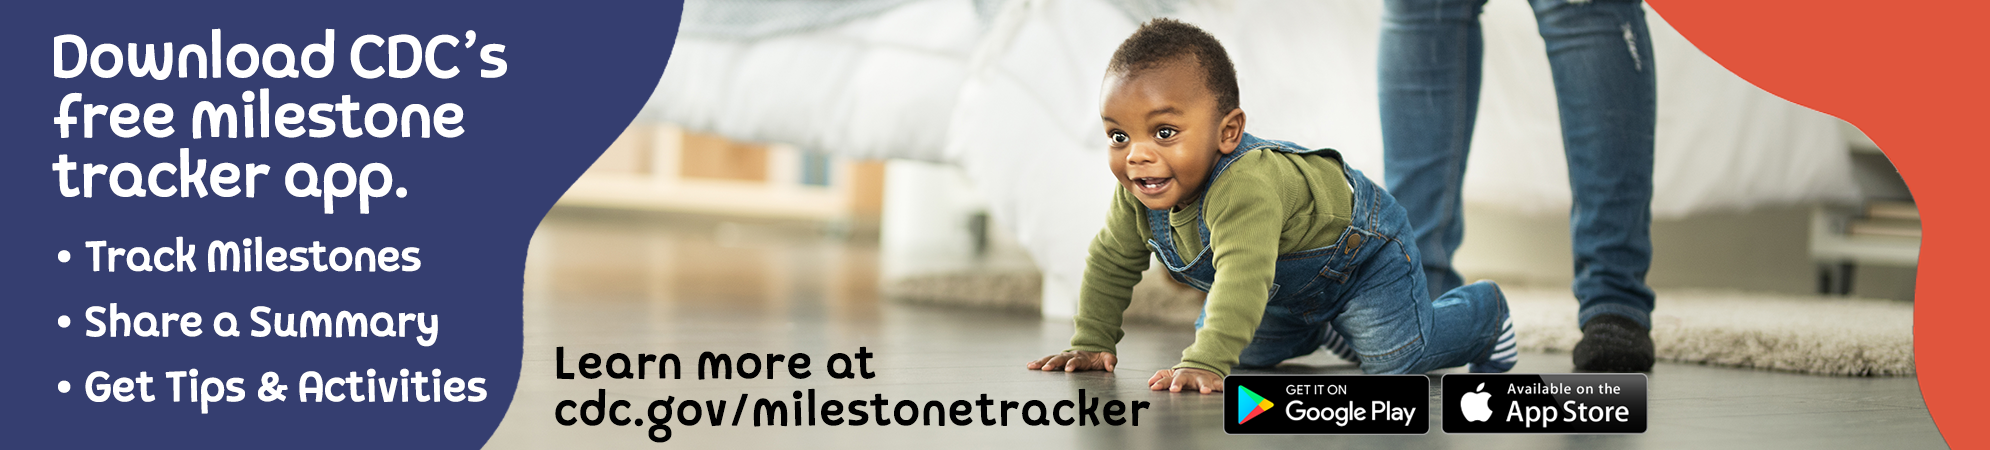 Download CDC's free milestone tracker app. Track milestones, share a summary and get tips & activities